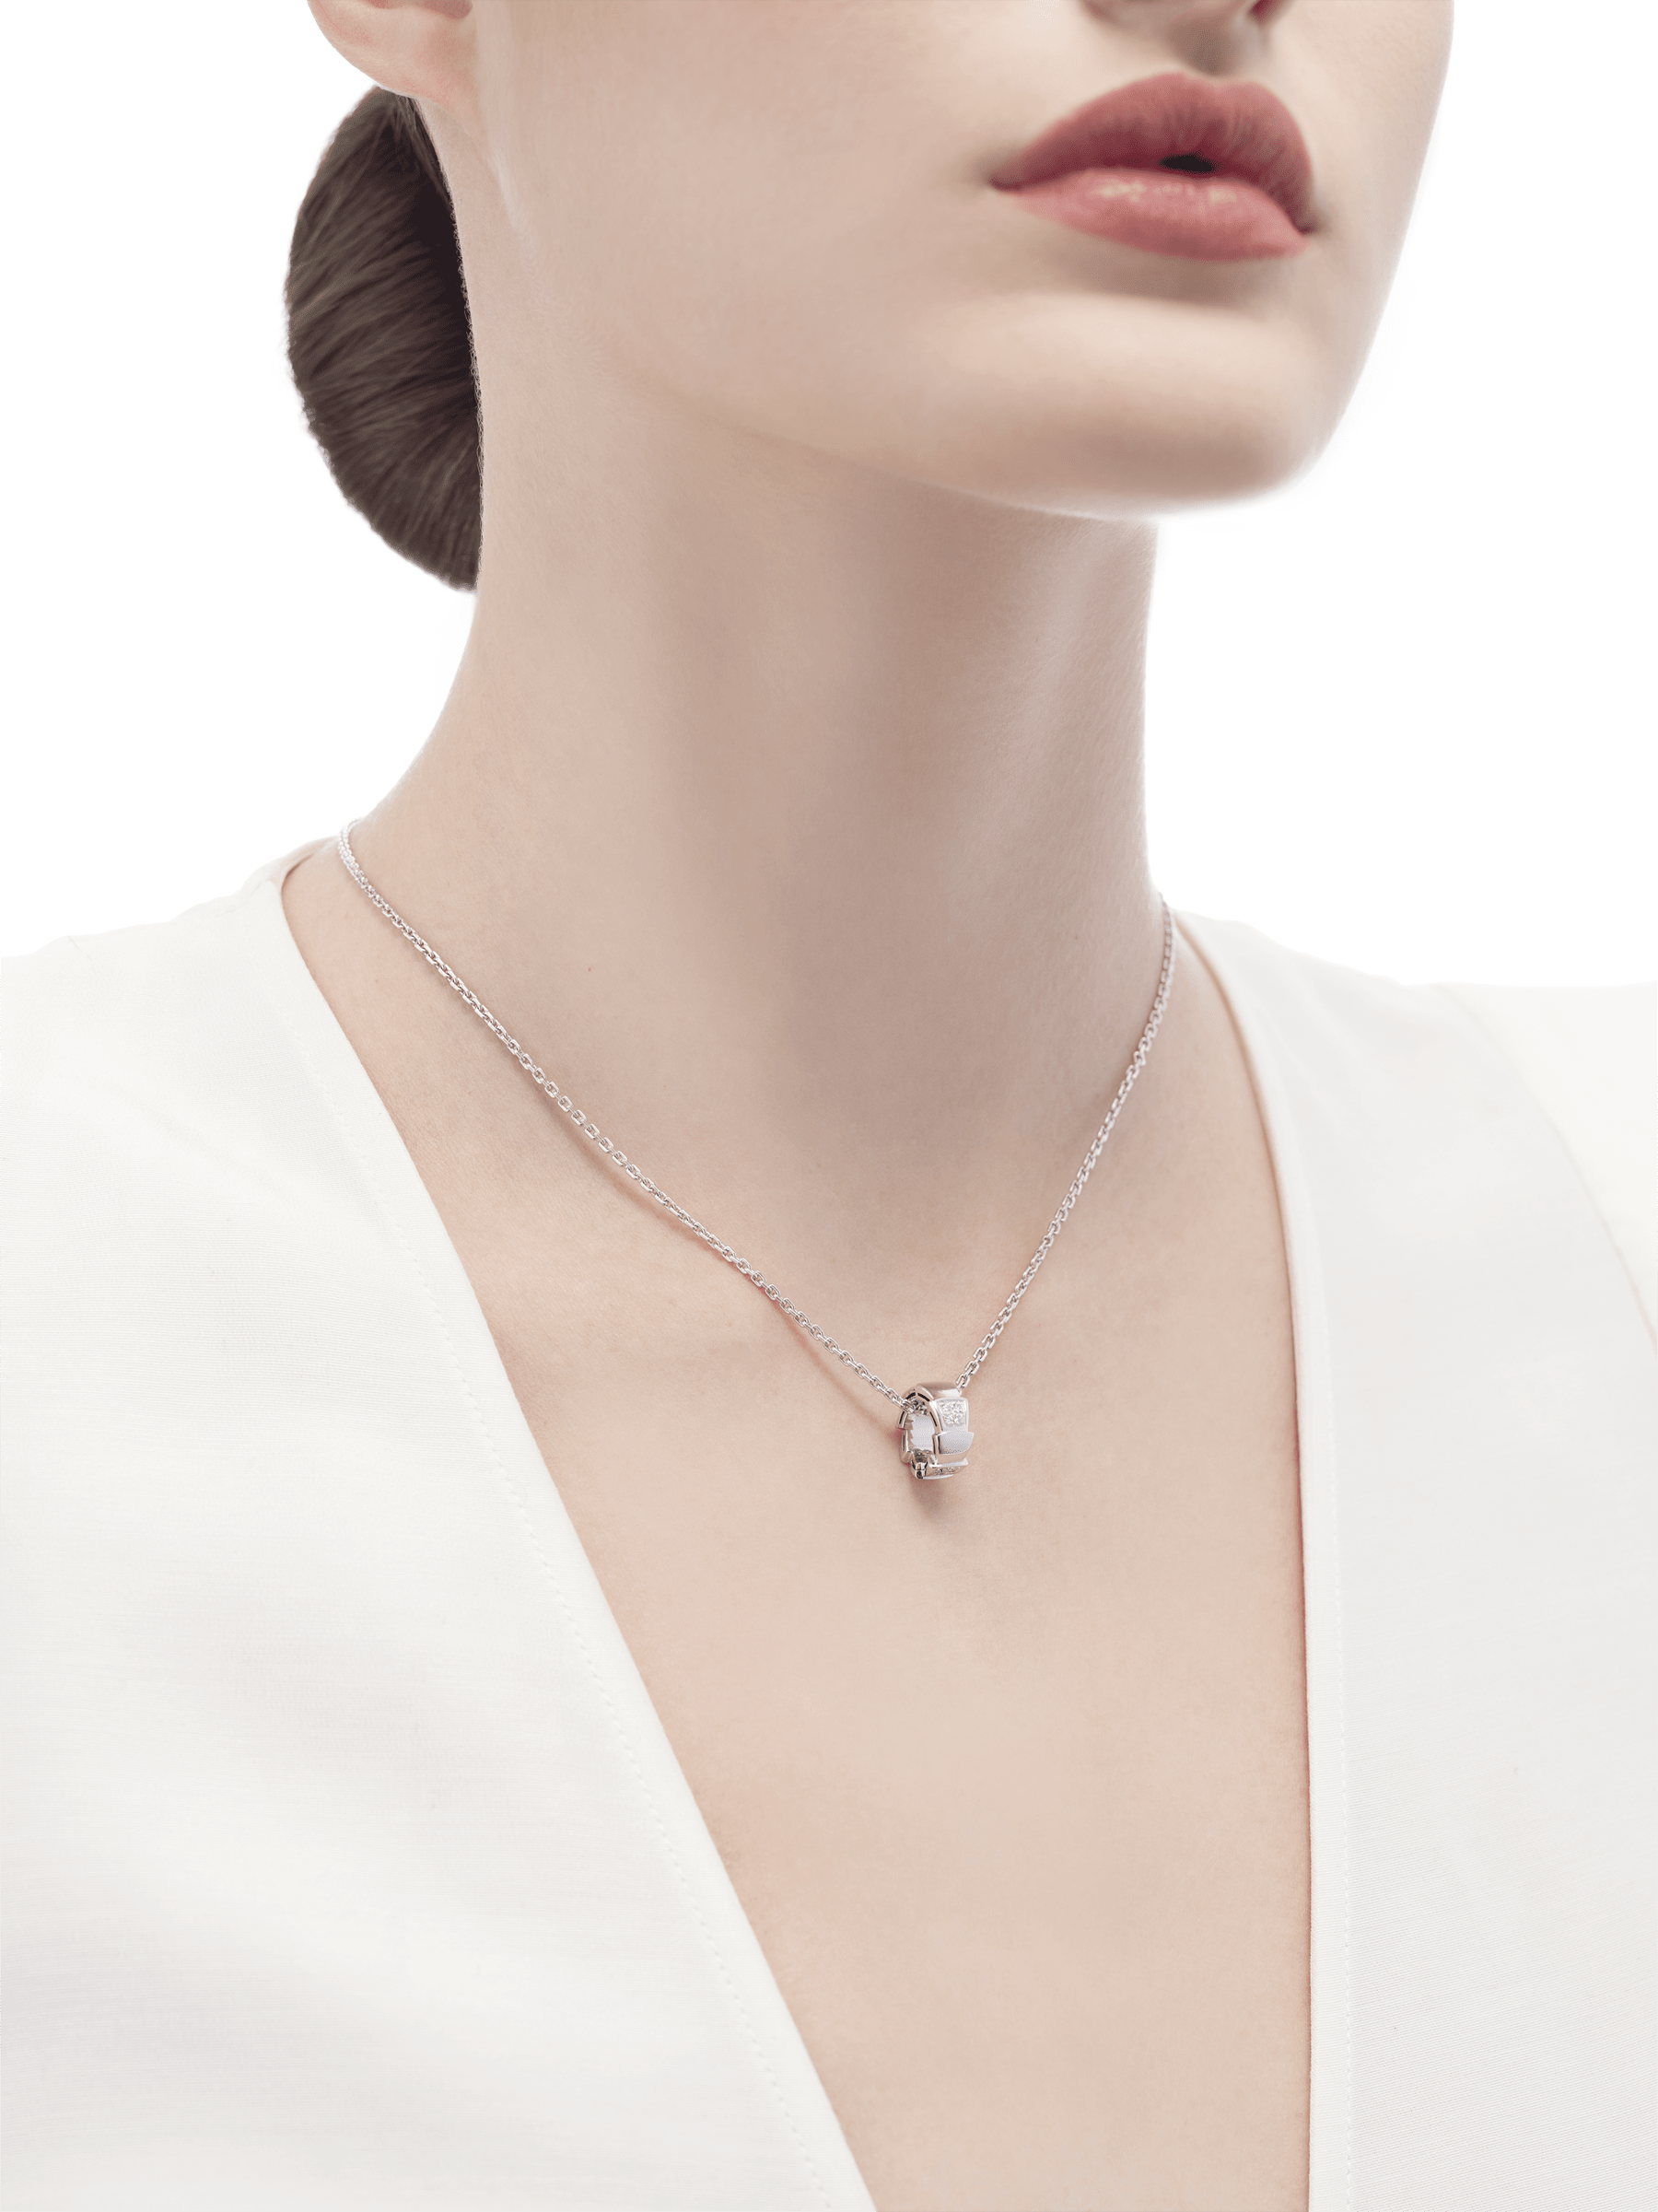 Serpenti Viper necklace with 18 kt white gold chain and 18 kt white gold pendant set with demi pavé diamonds.(0.21 ct) 355255 image 4